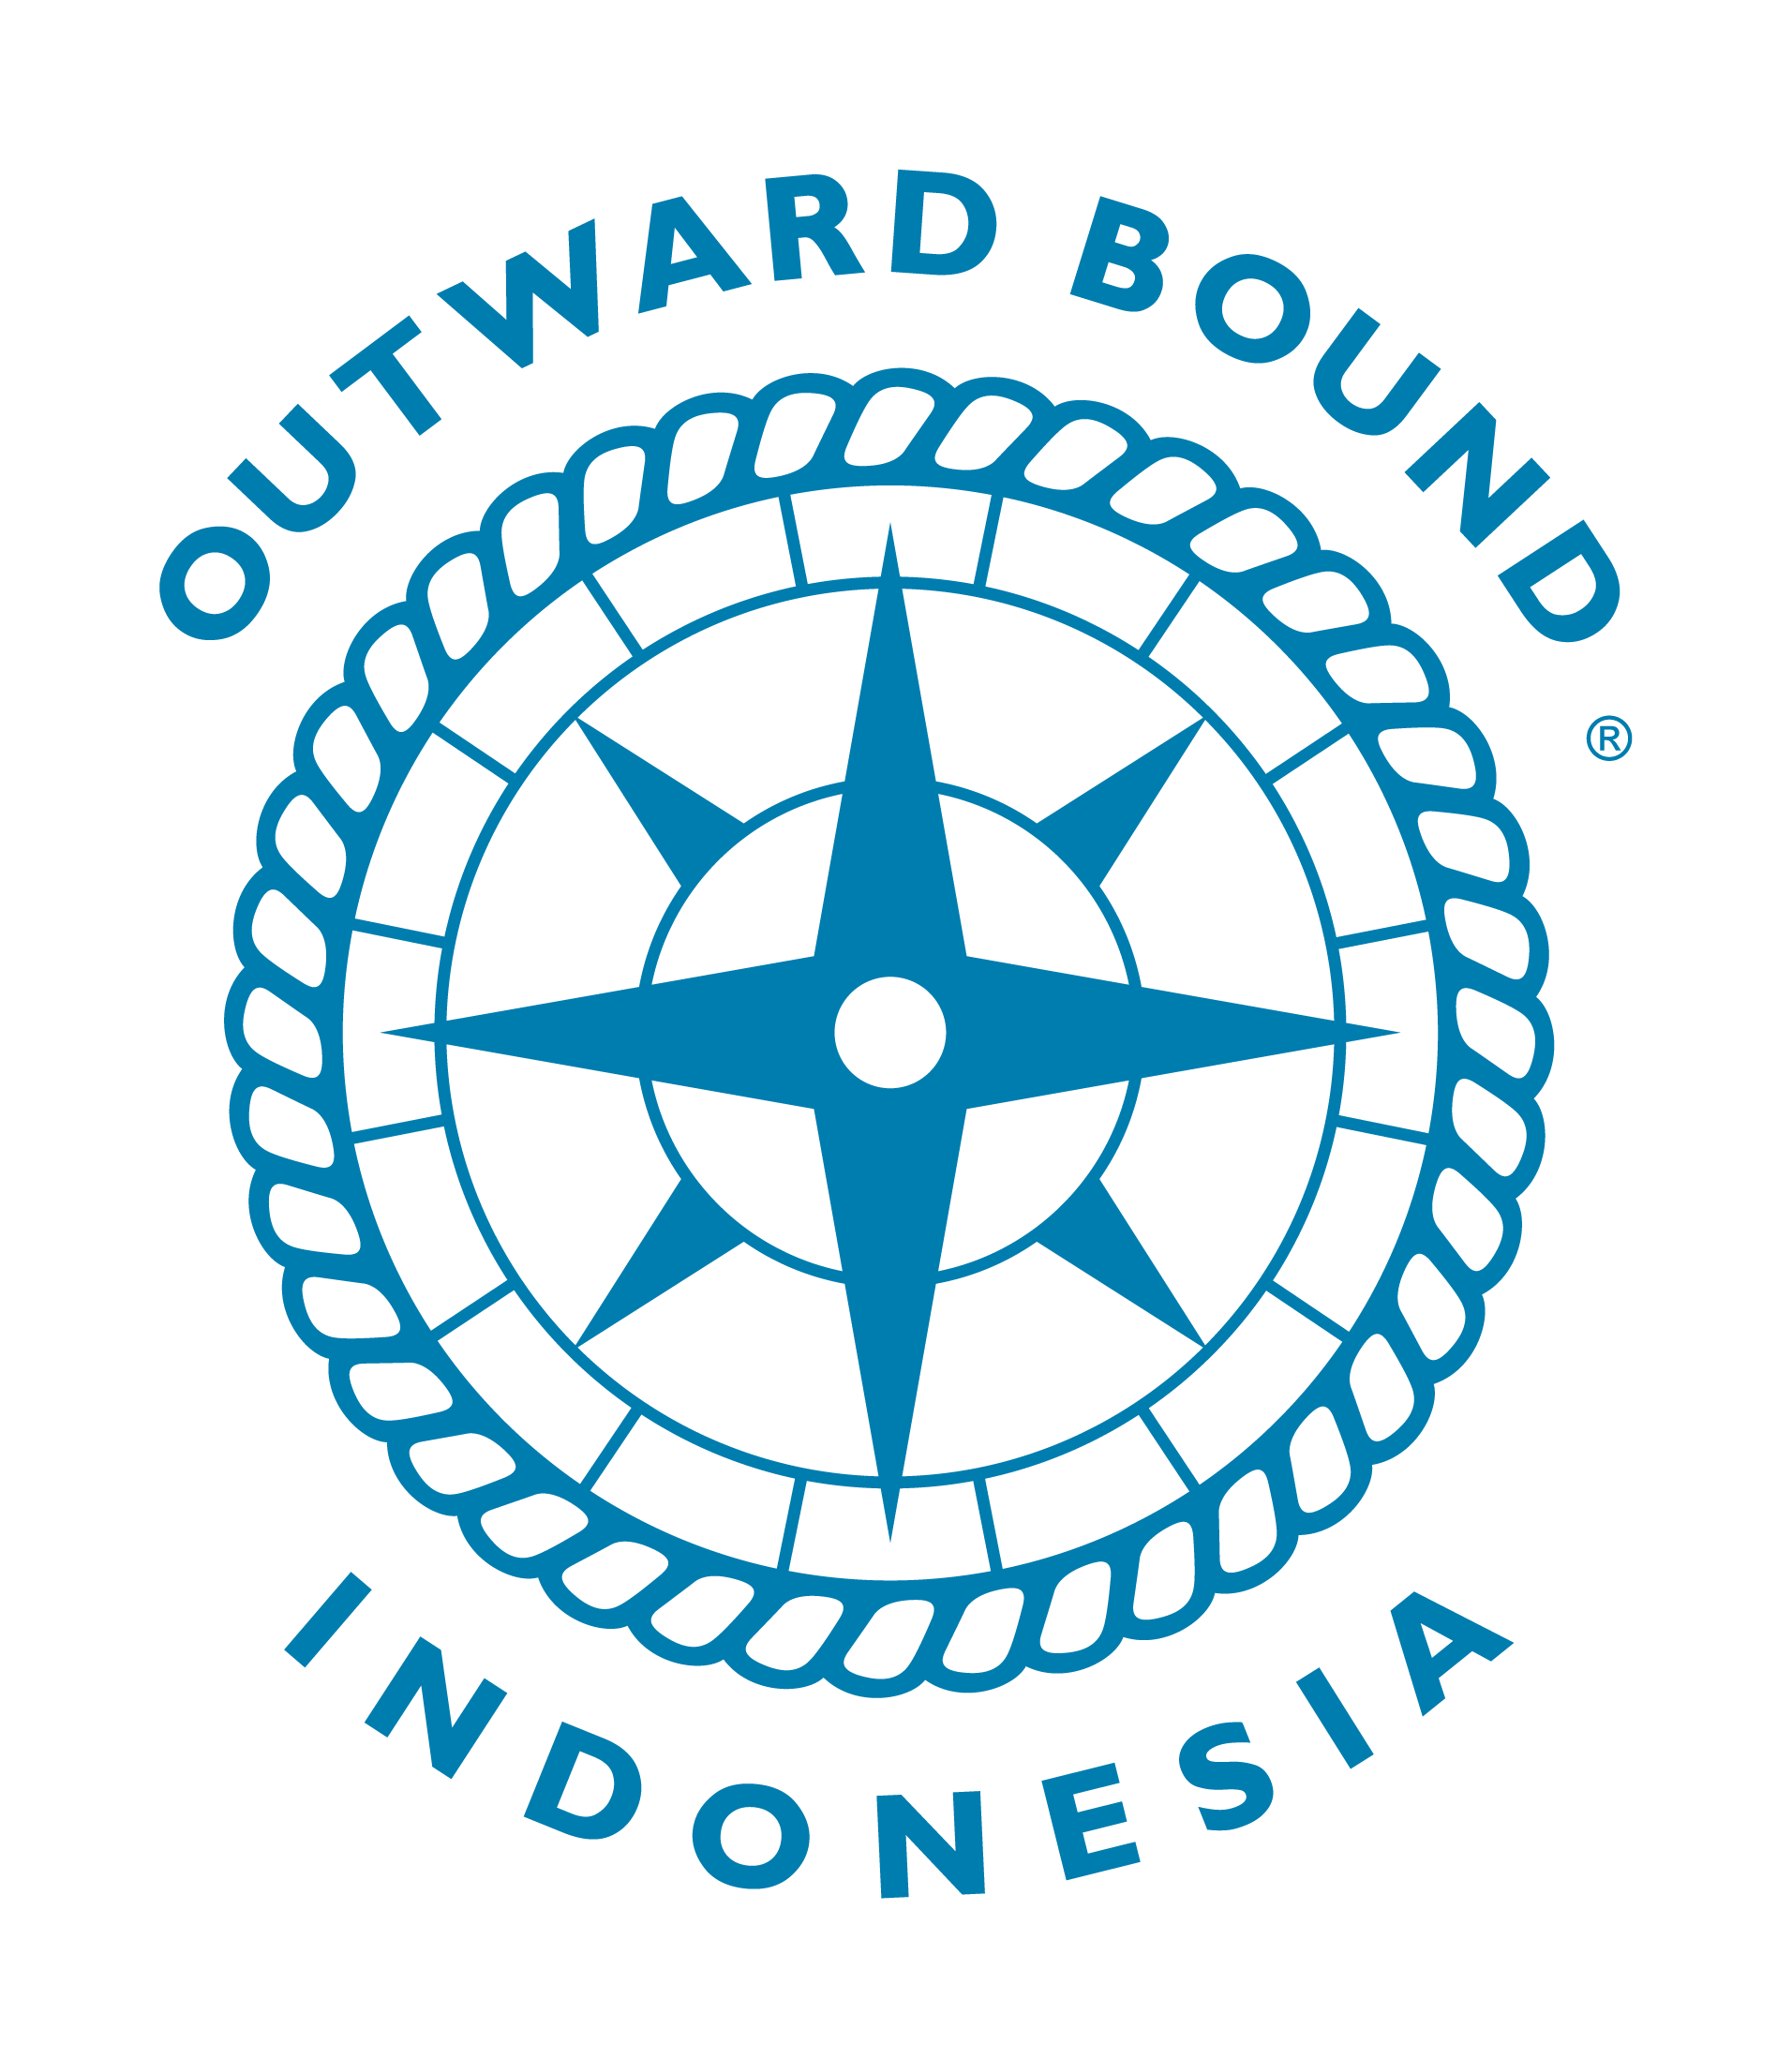 Outward Bound Indonesia - Empowers a winning attitude, builds teams, sharpens leadership